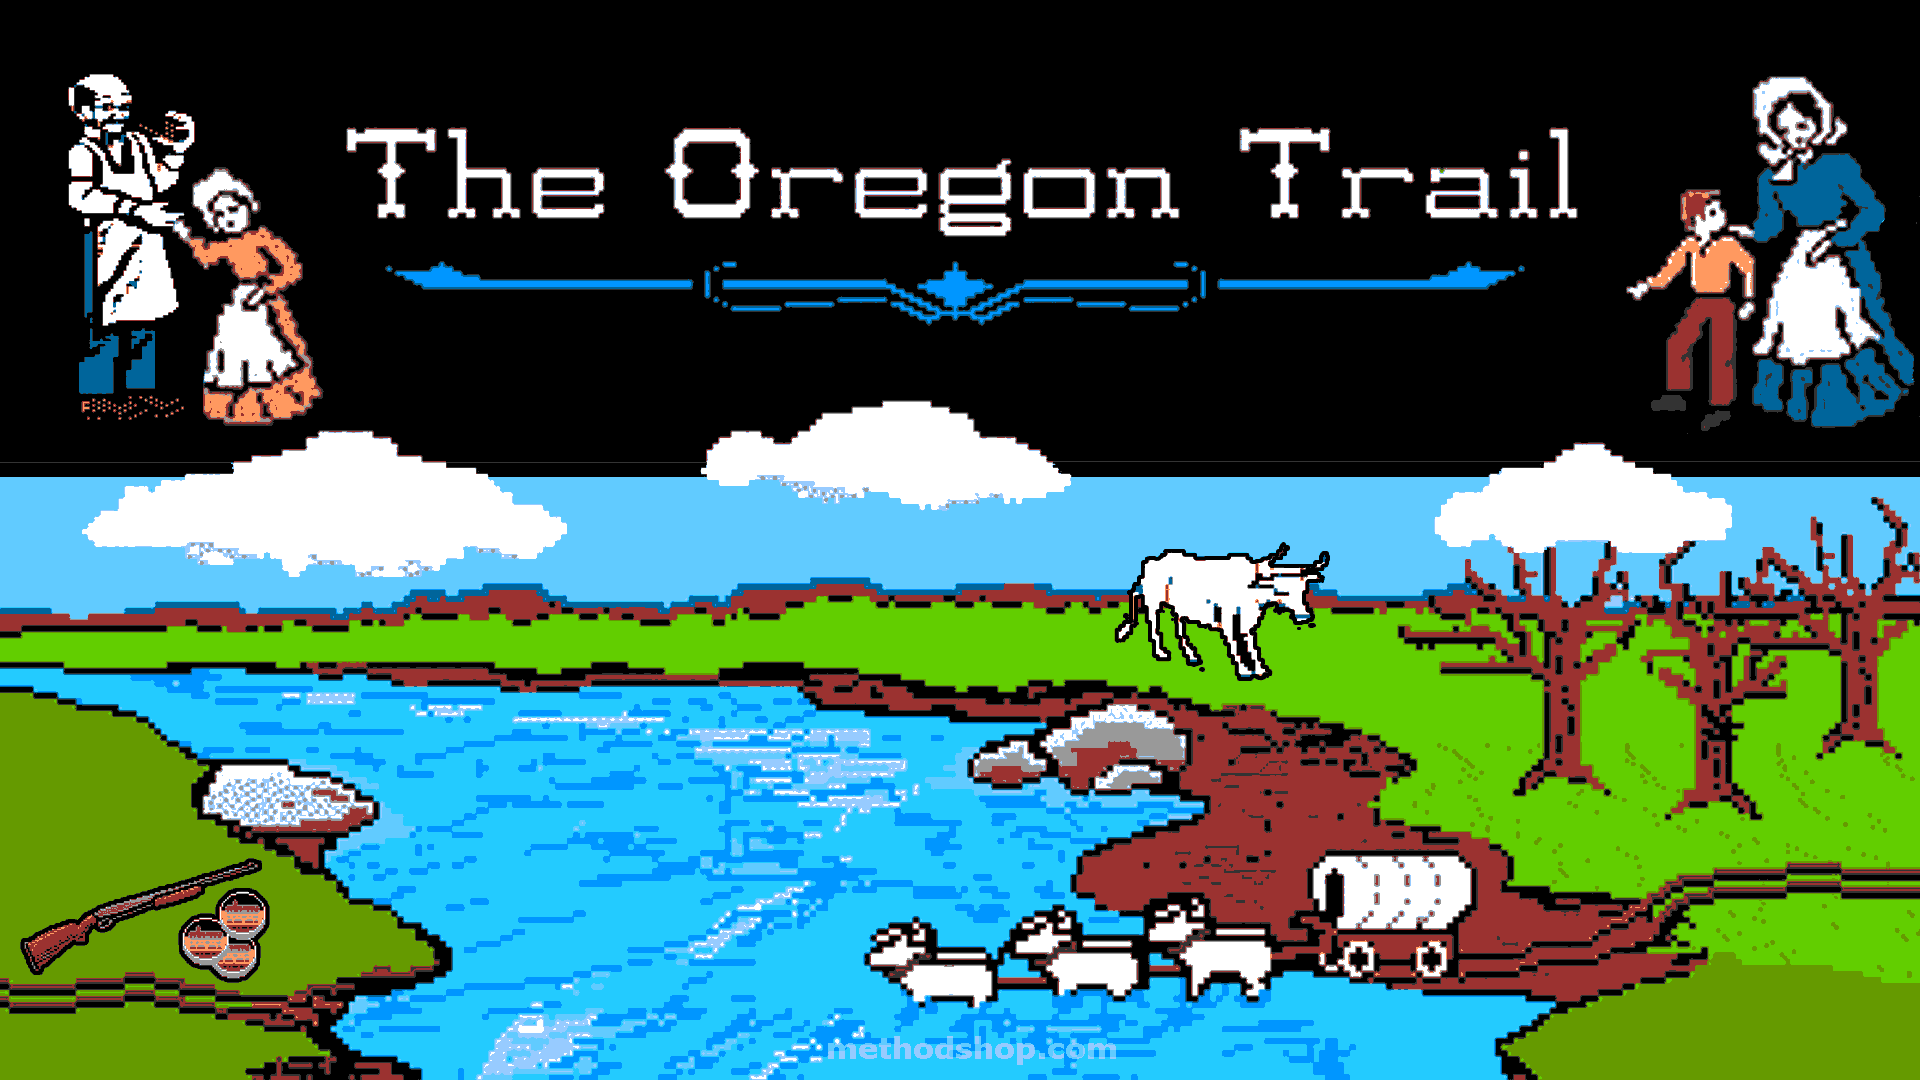 Educational Games: Check Out the Oregon Trail Video Game